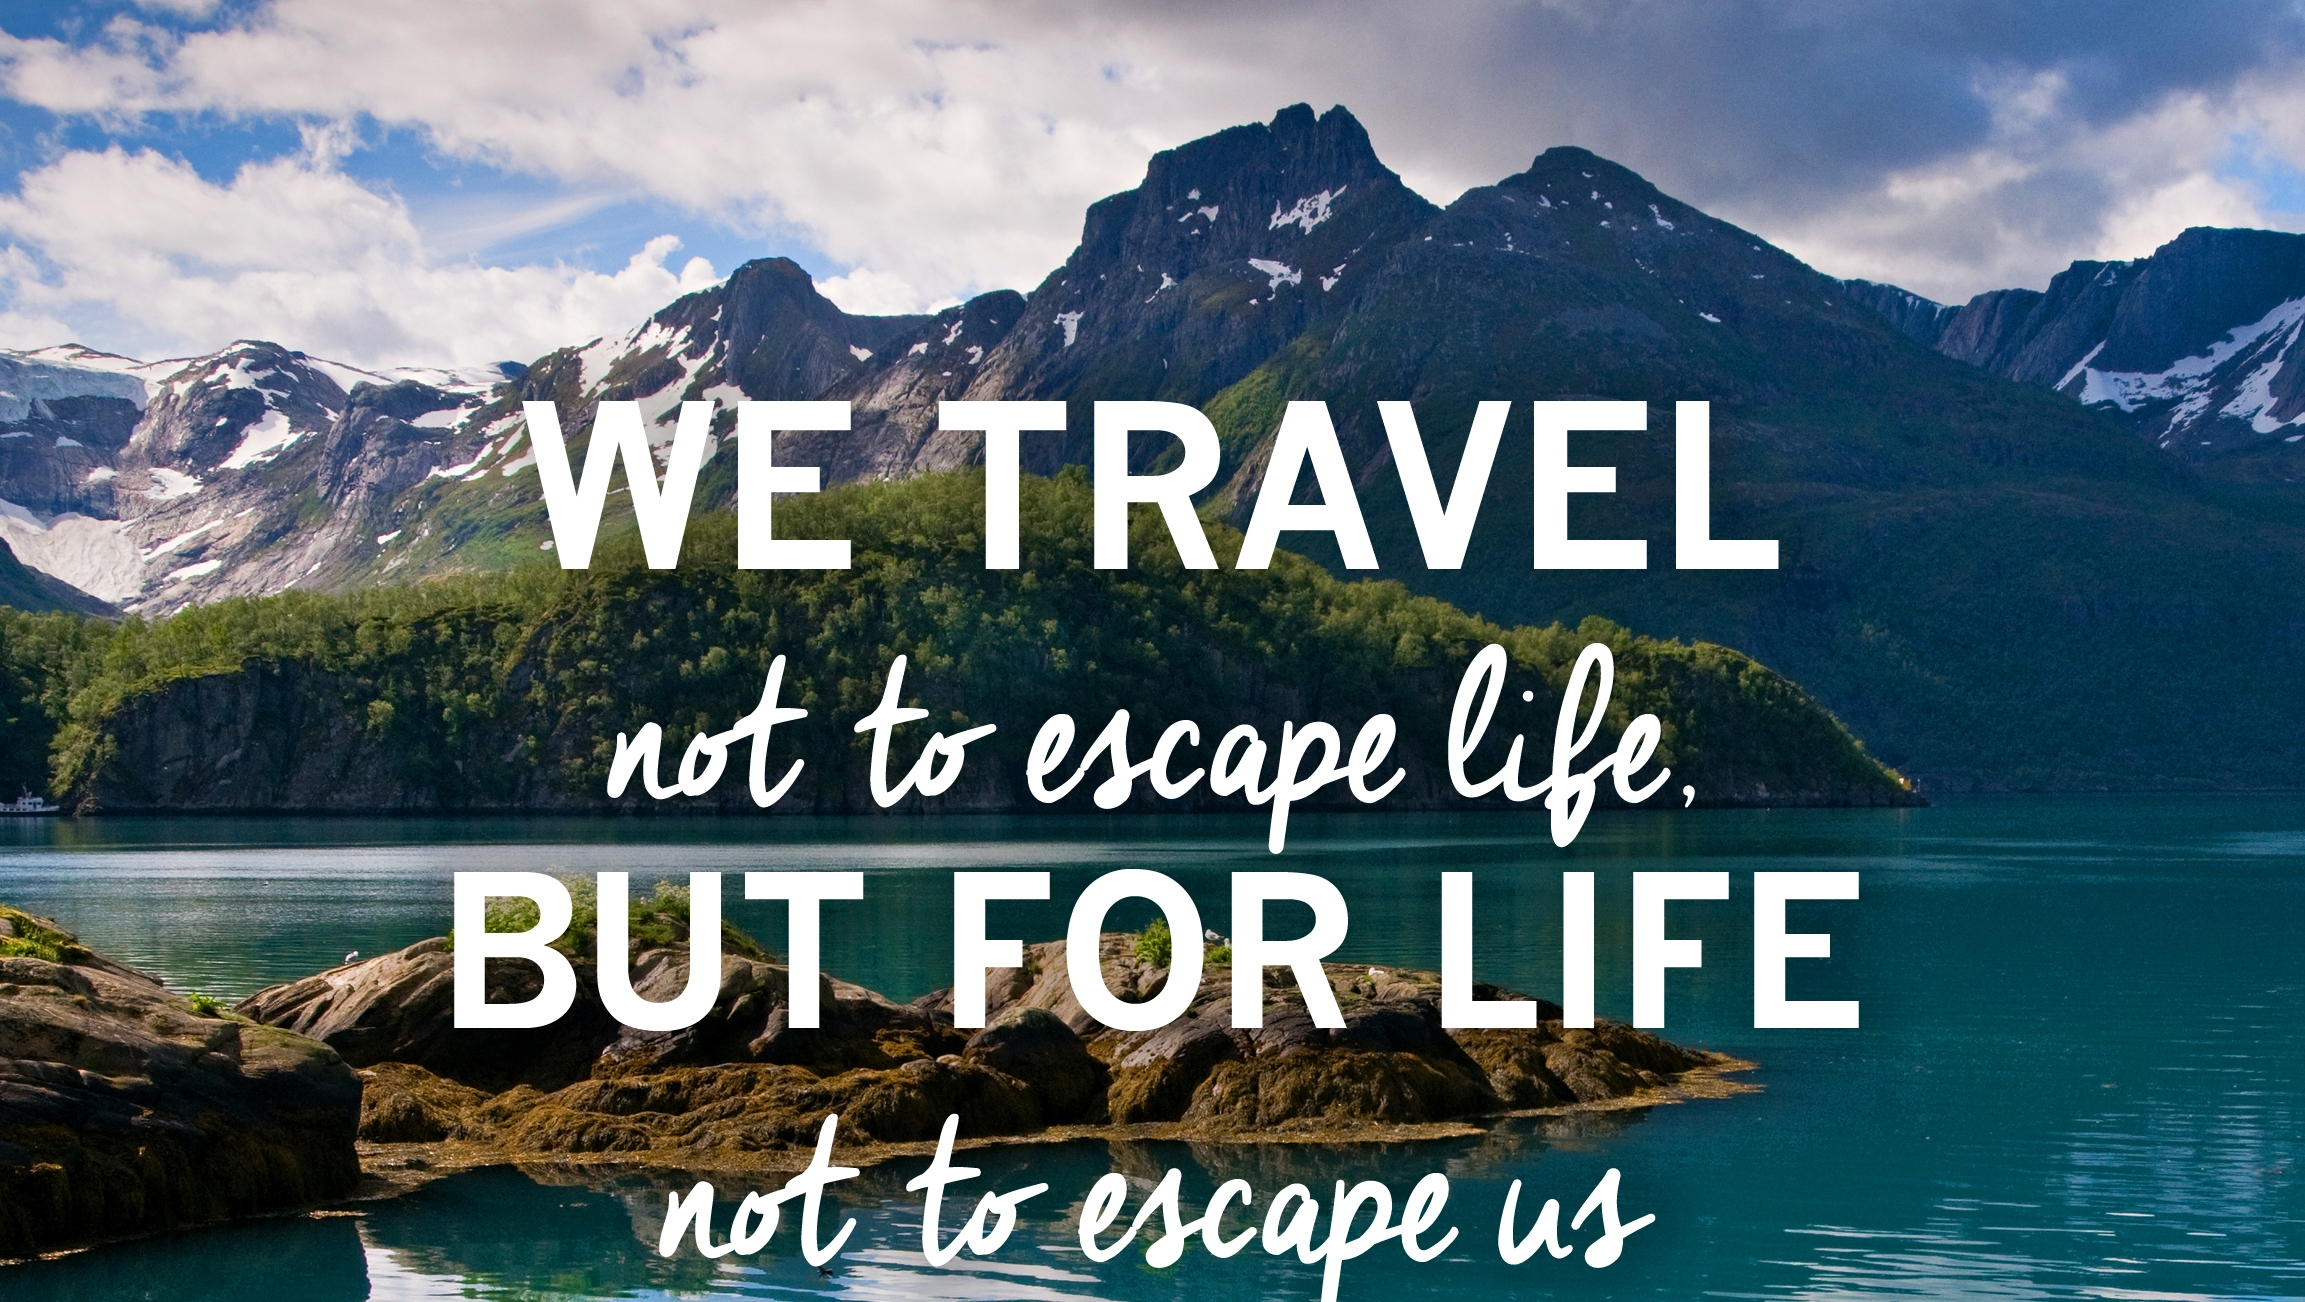 Travel To Escape Funny Pictures Quotes Memes Funny Images Funny Jokes Funny Photos